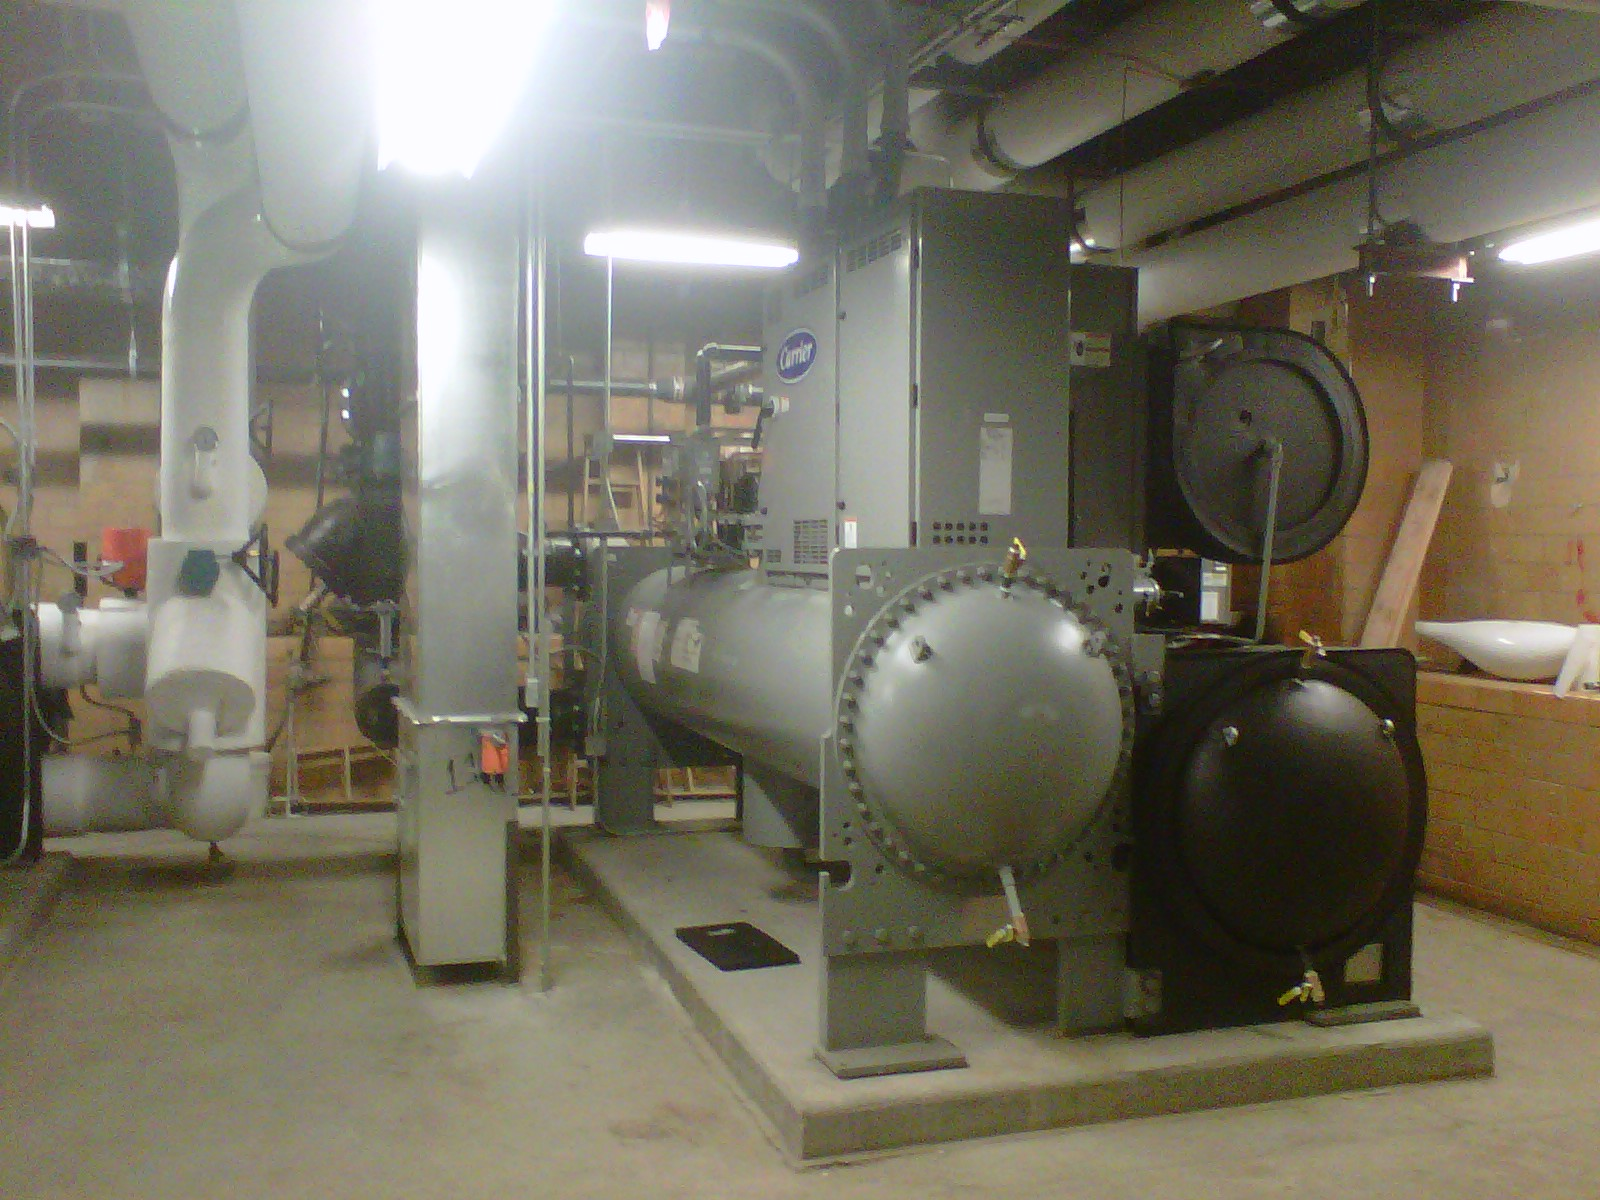 Queens Supreme CourtHouse_Boiler